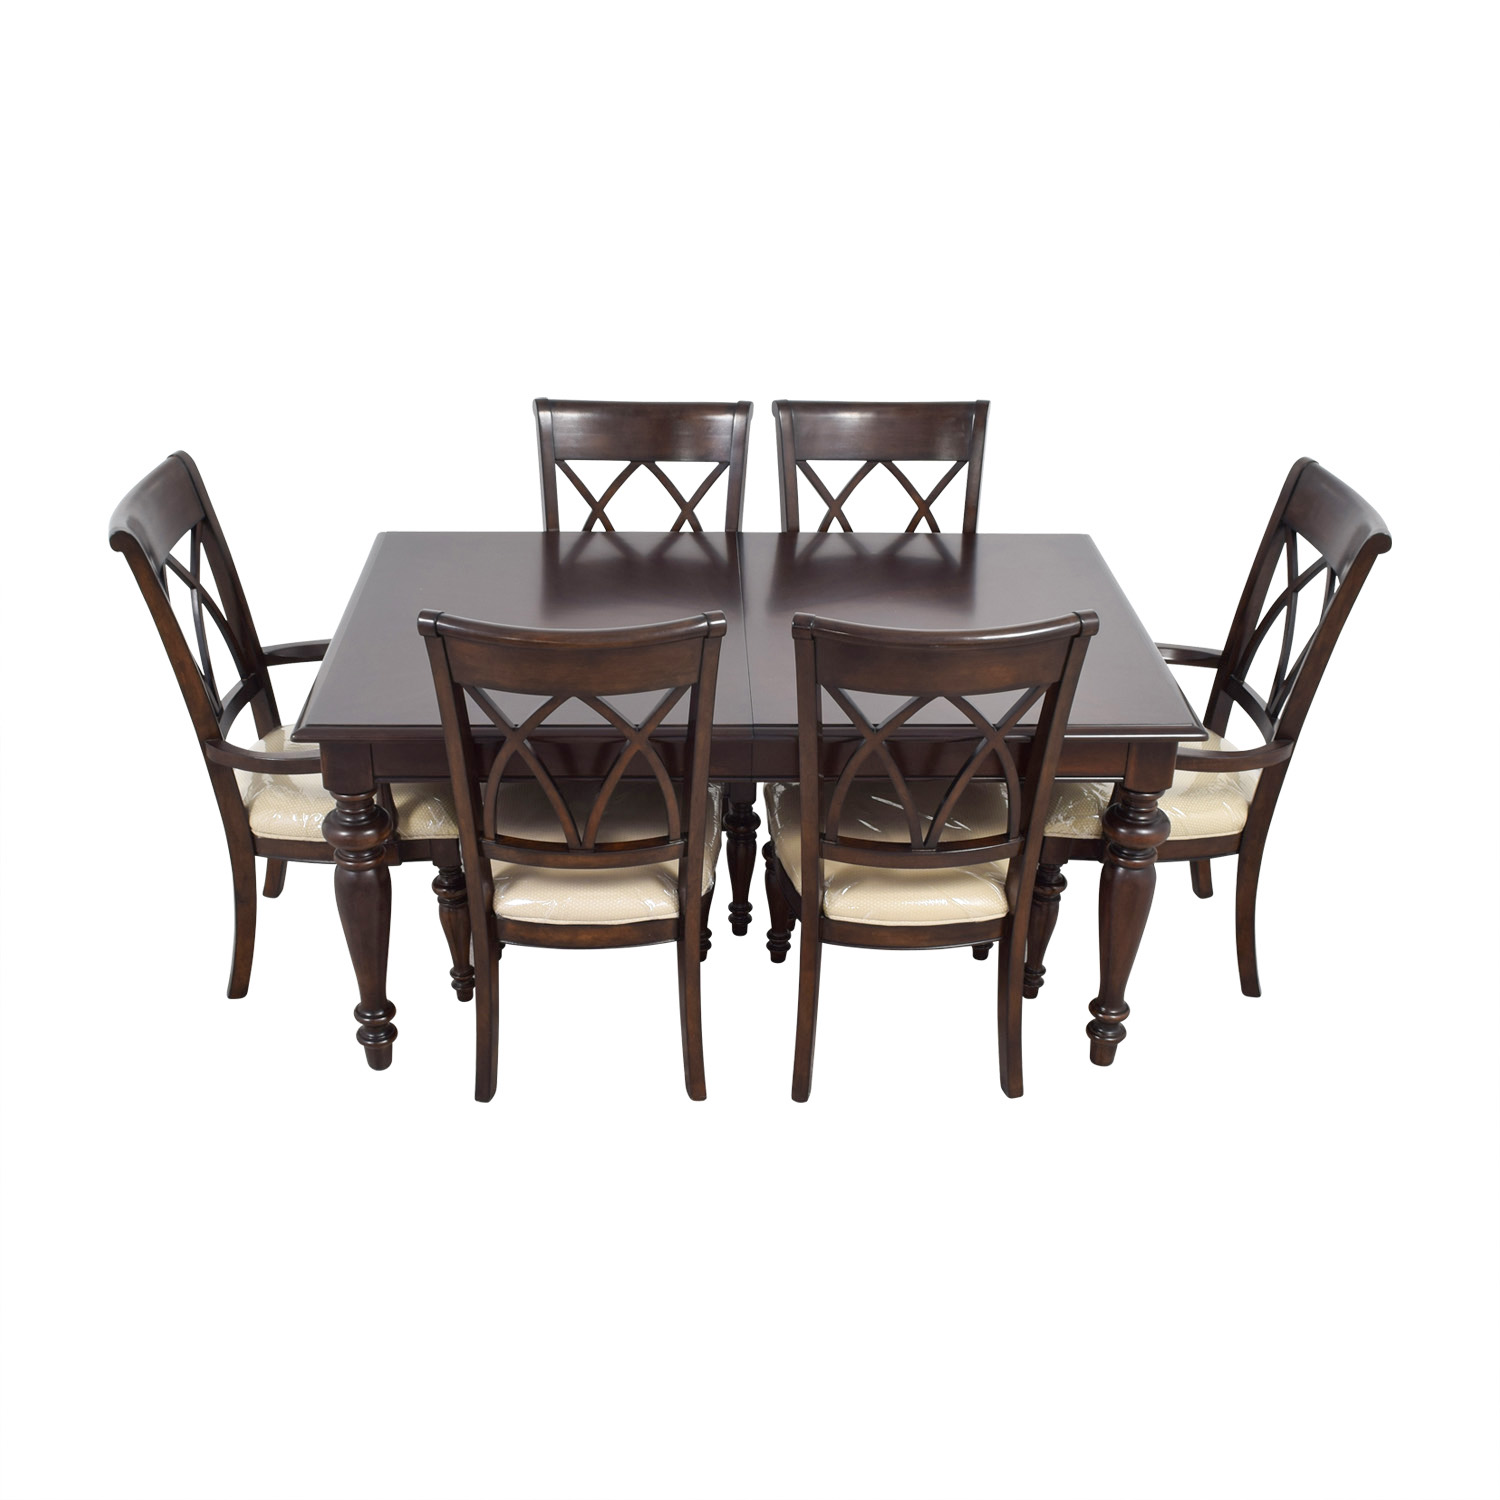 Macys Macys Wood Dining Set with Beige Upholstery for sale